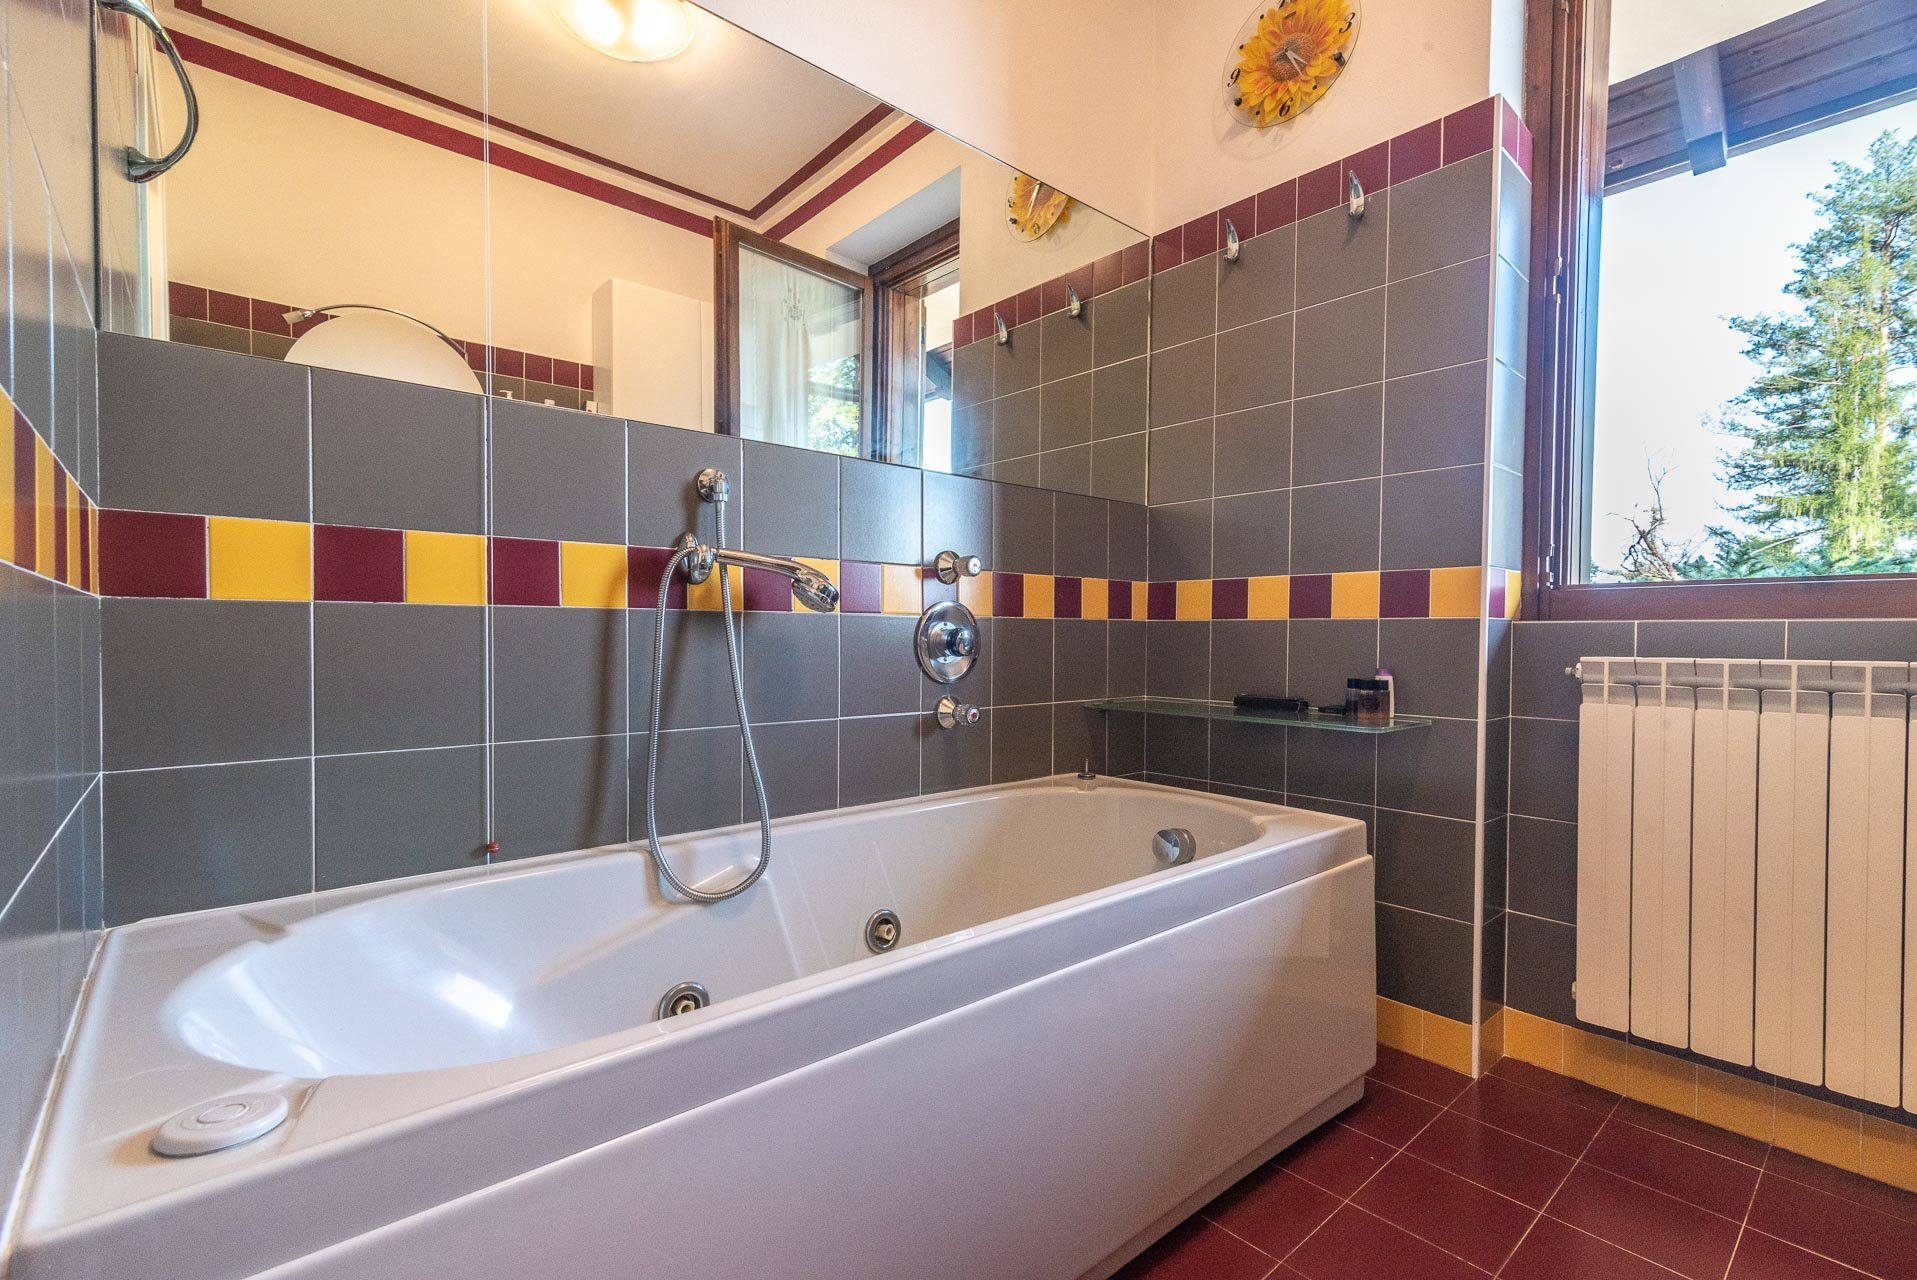 Villa for sale in Bee, with wonderful lake view - second bathroom